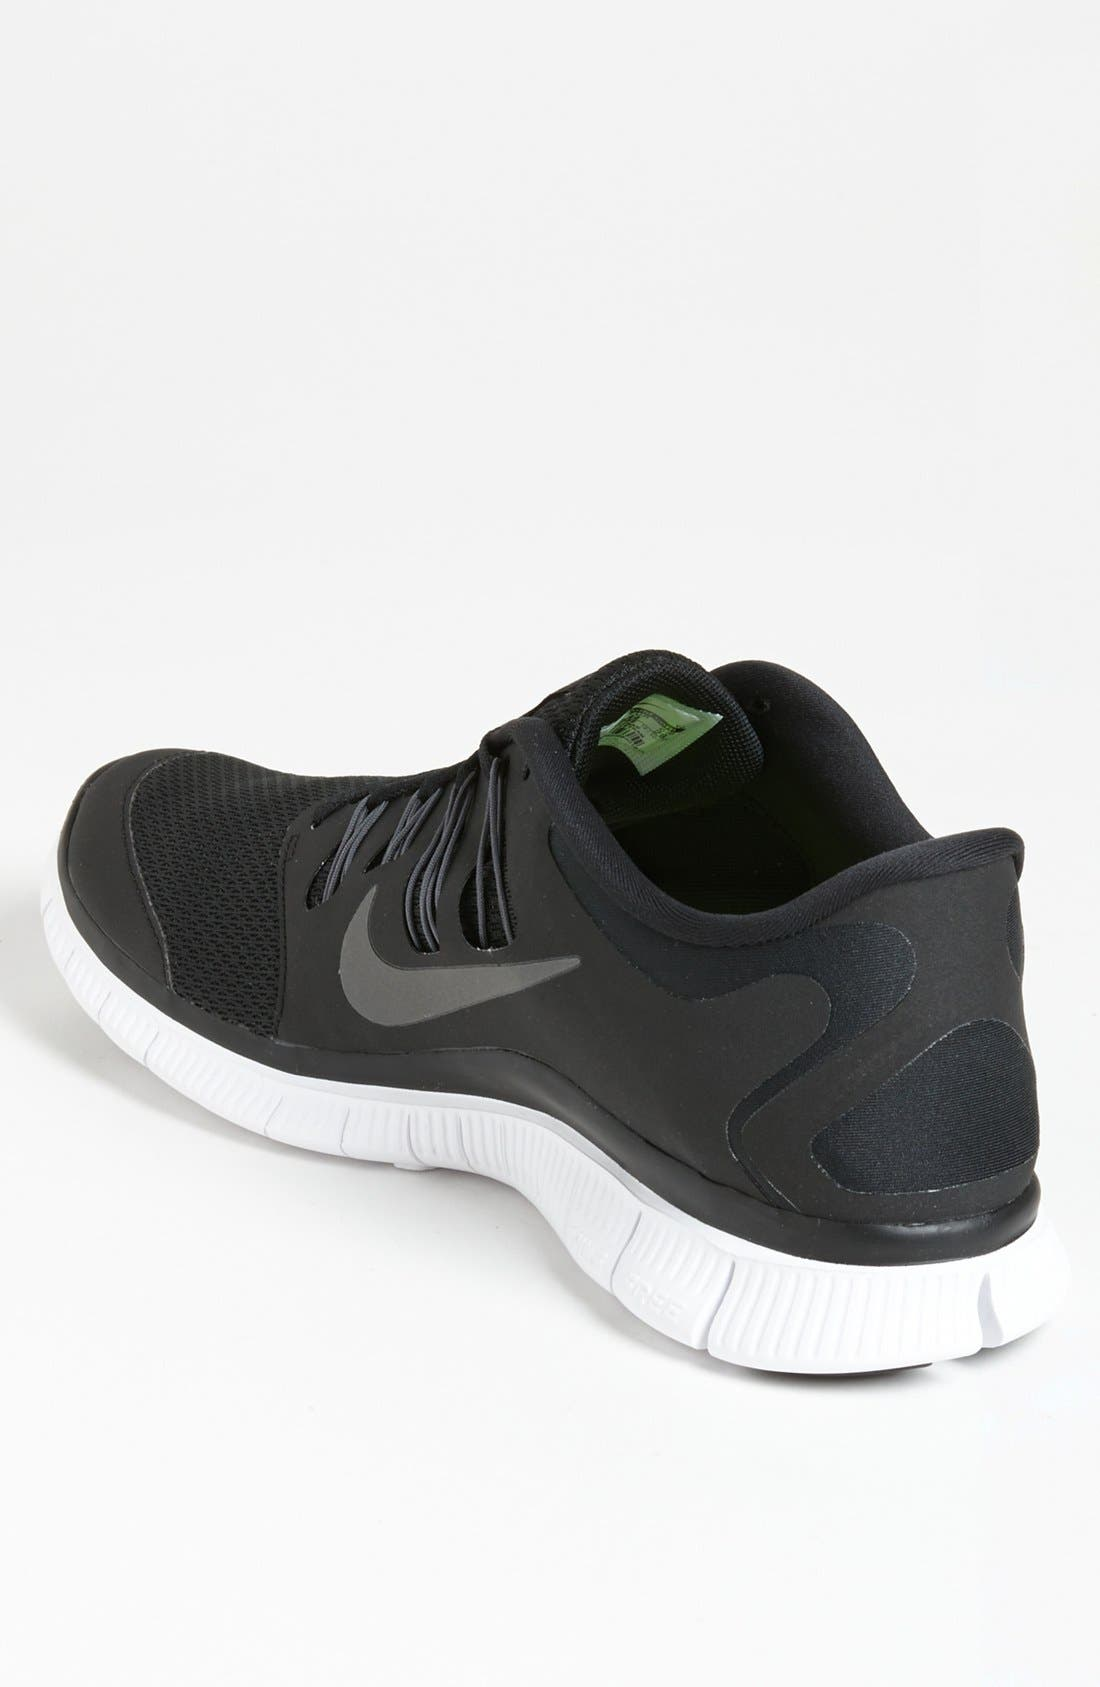 Alternate Image 2  - Nike 'Free 5.0+' Running Shoe (Men)